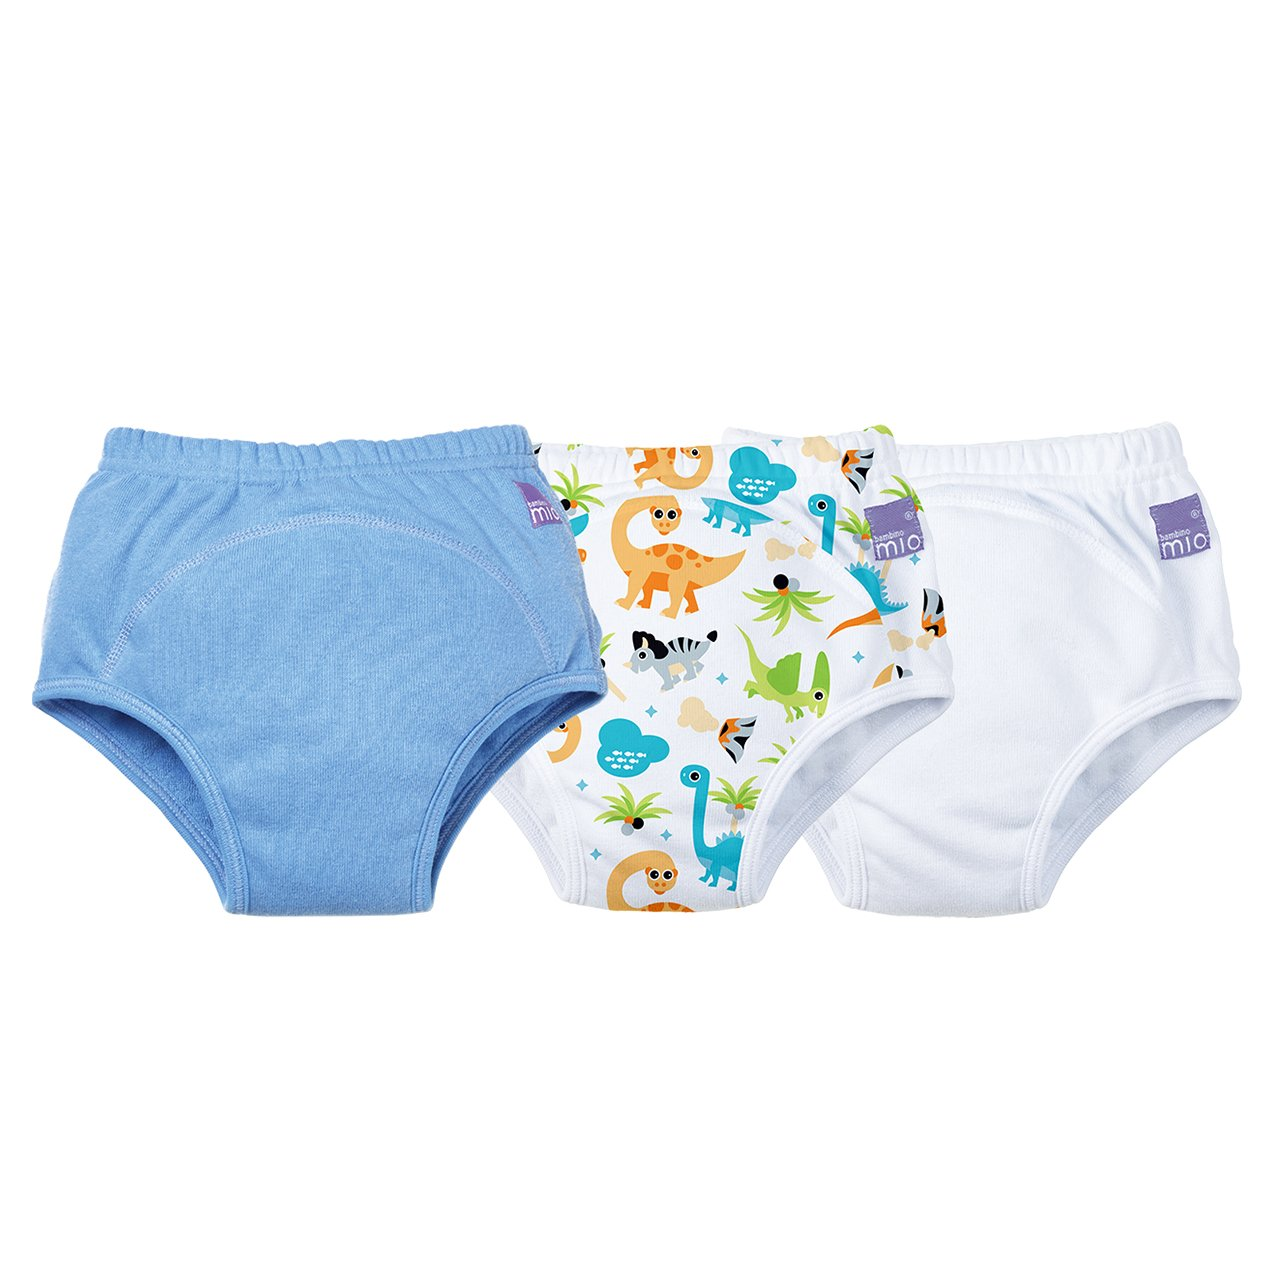 Bambino Mio, potty training pants, mixed boy teal, 2-3 years, 3 pack Bambino Mio UK 3TP2-3 TL BMX